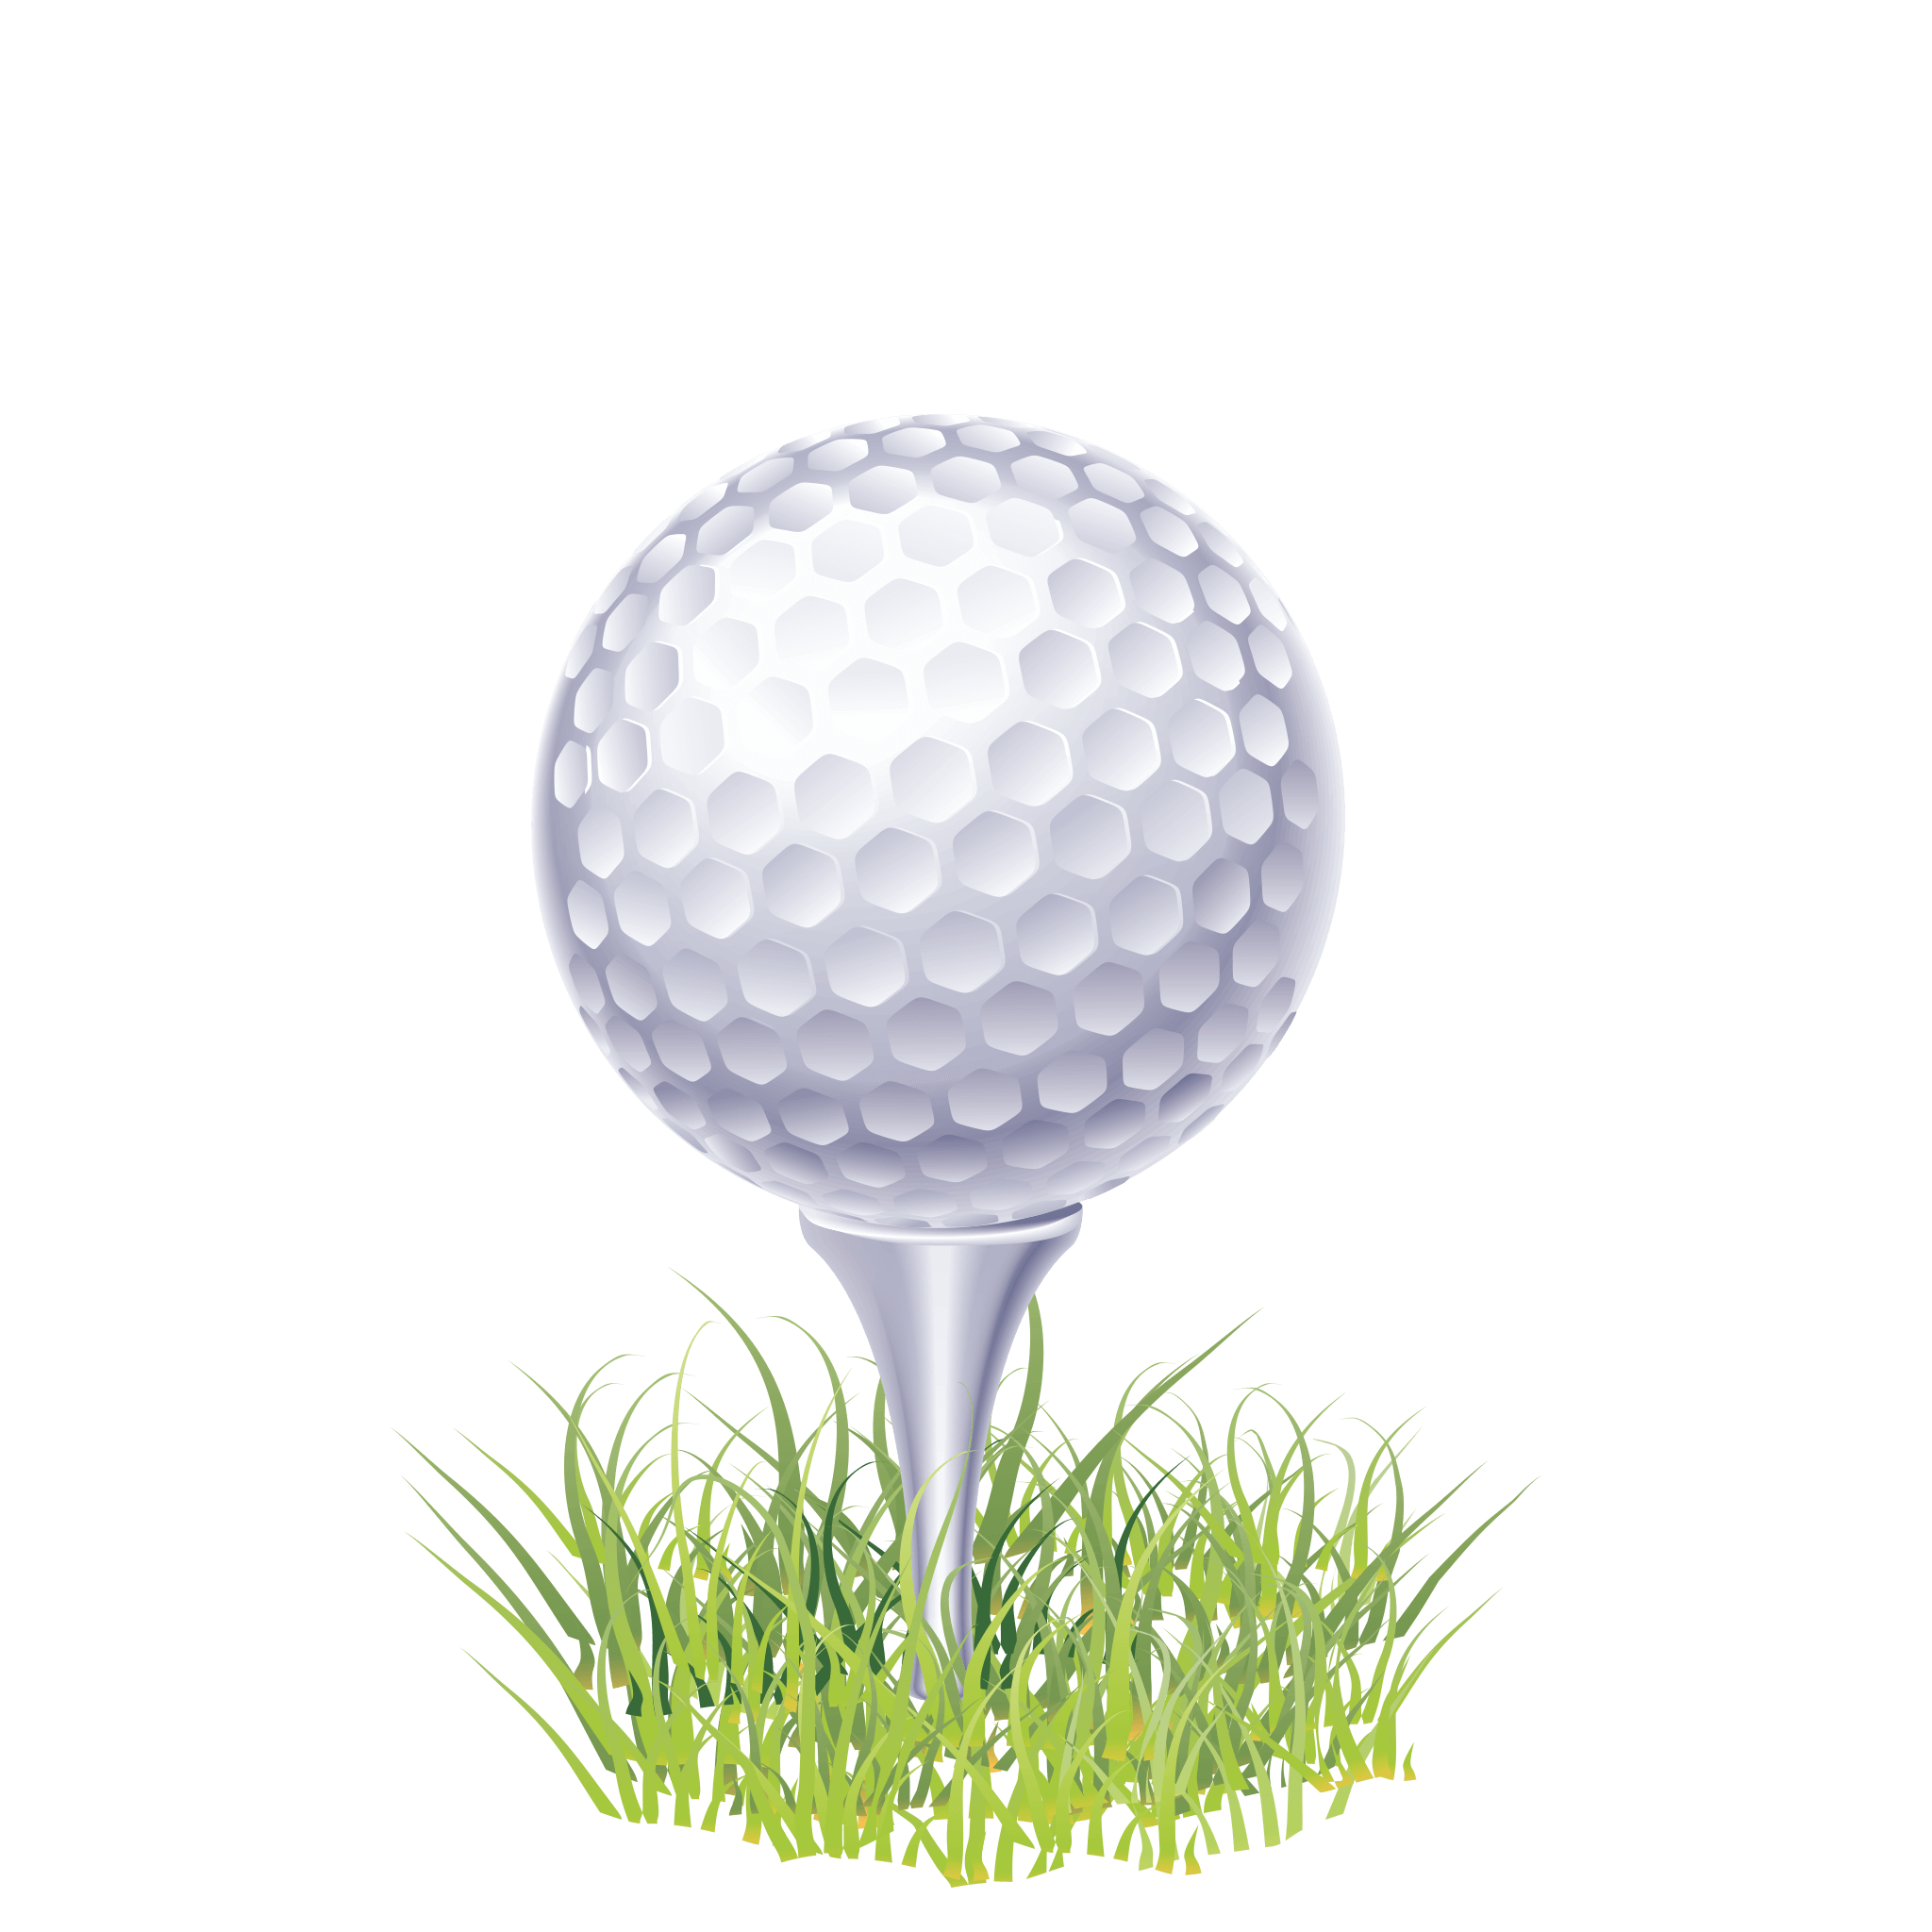 Golf Ball PNG Image Free Download searchpng.com.